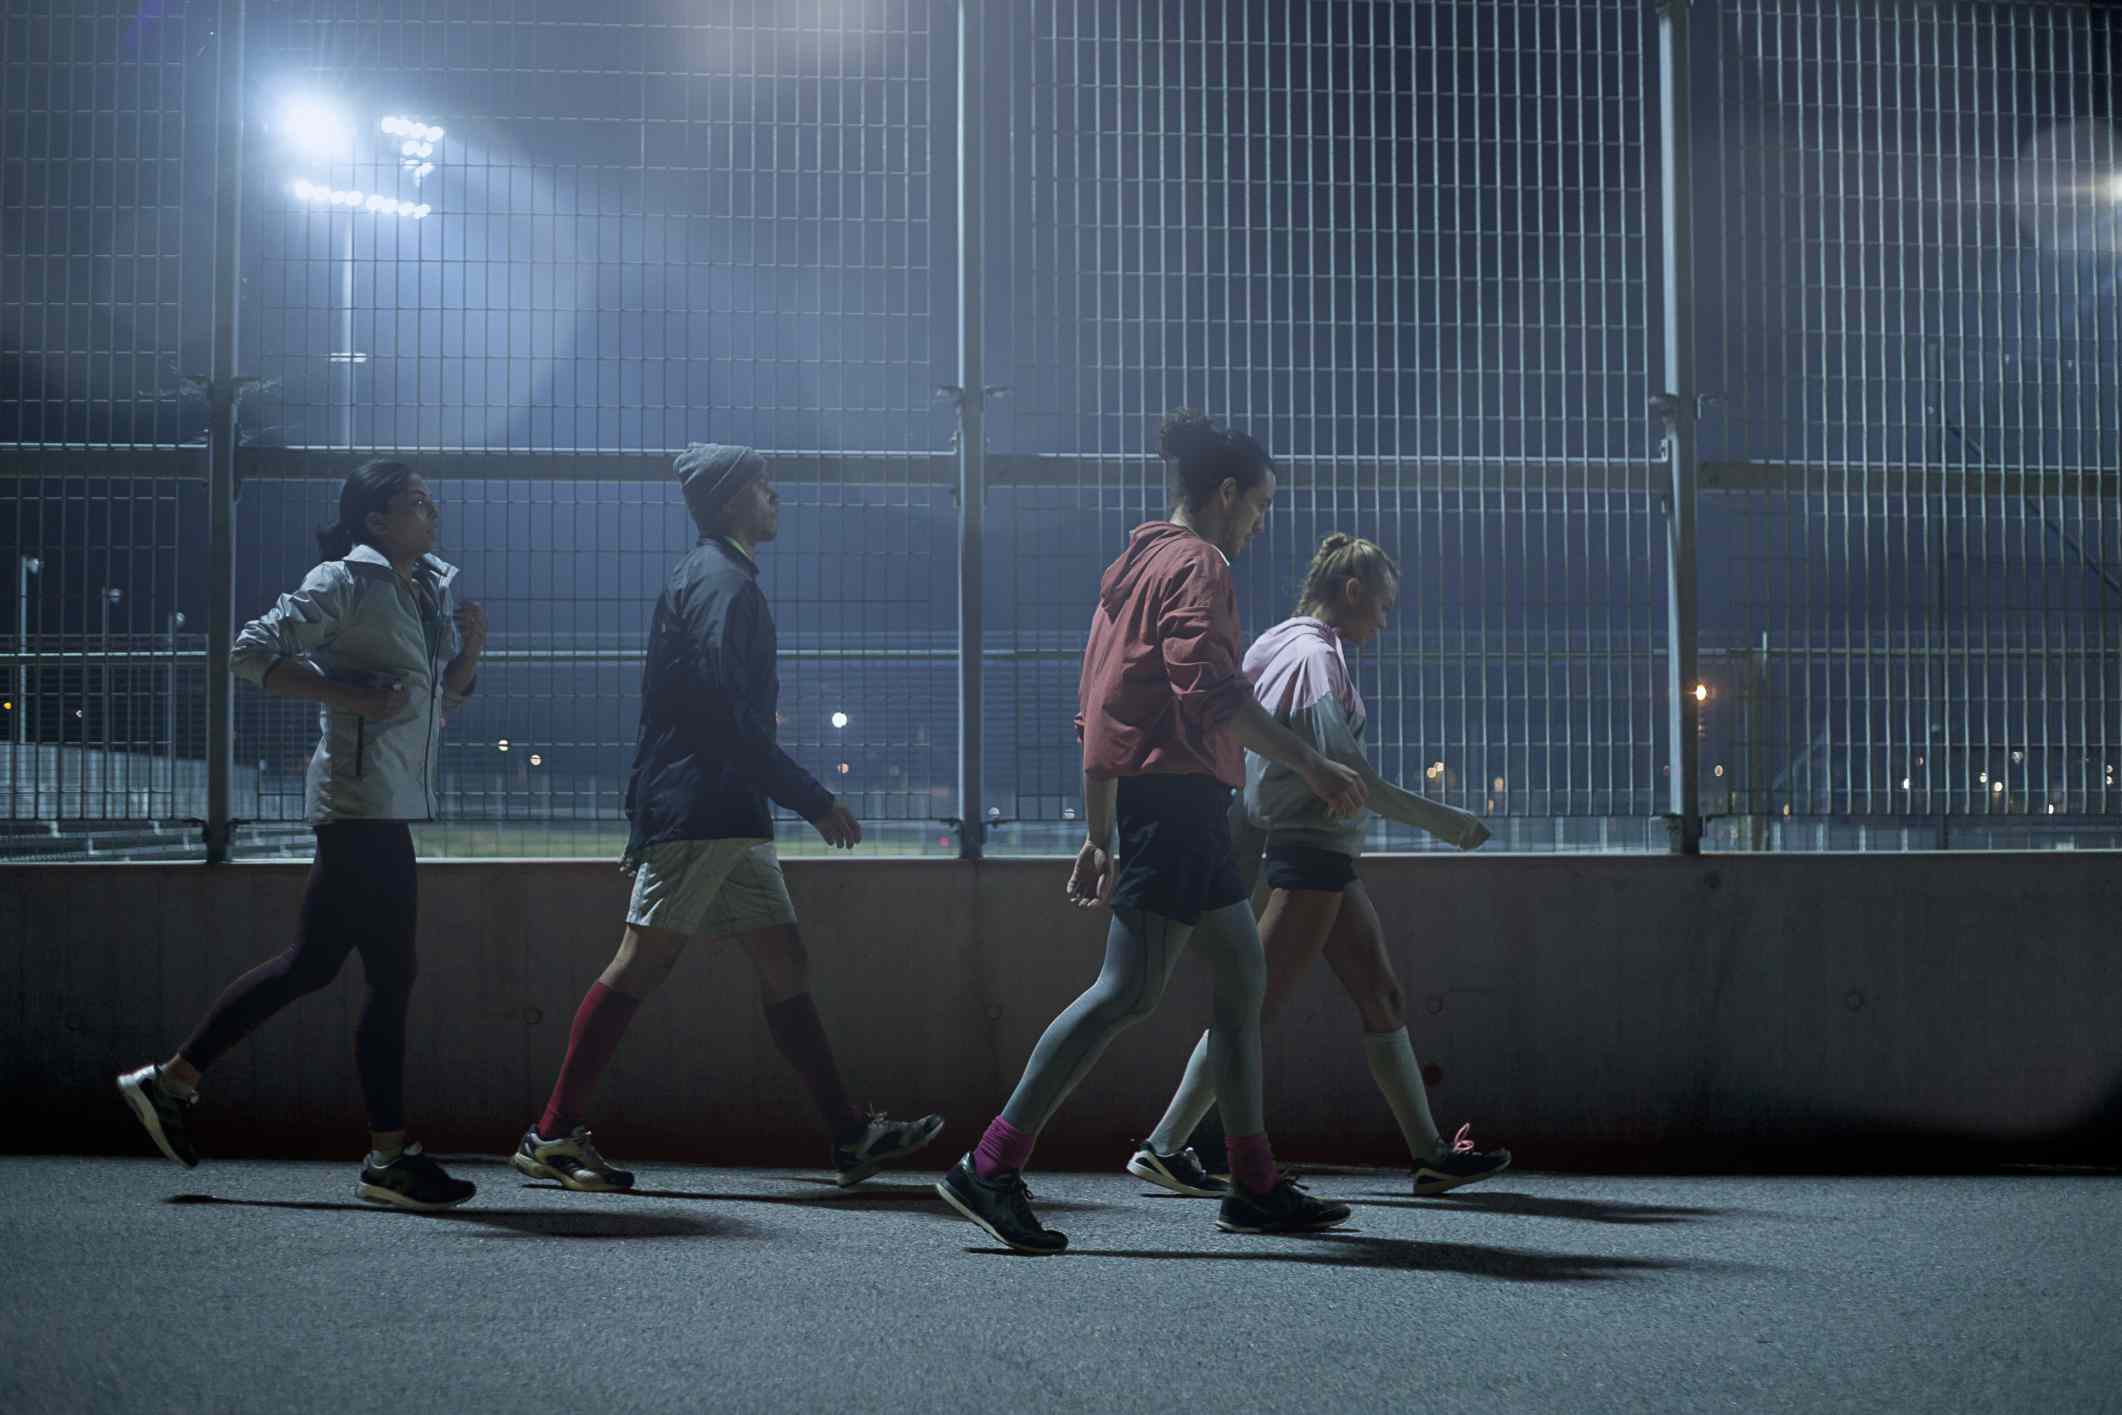 two men and two women walking at night around a track